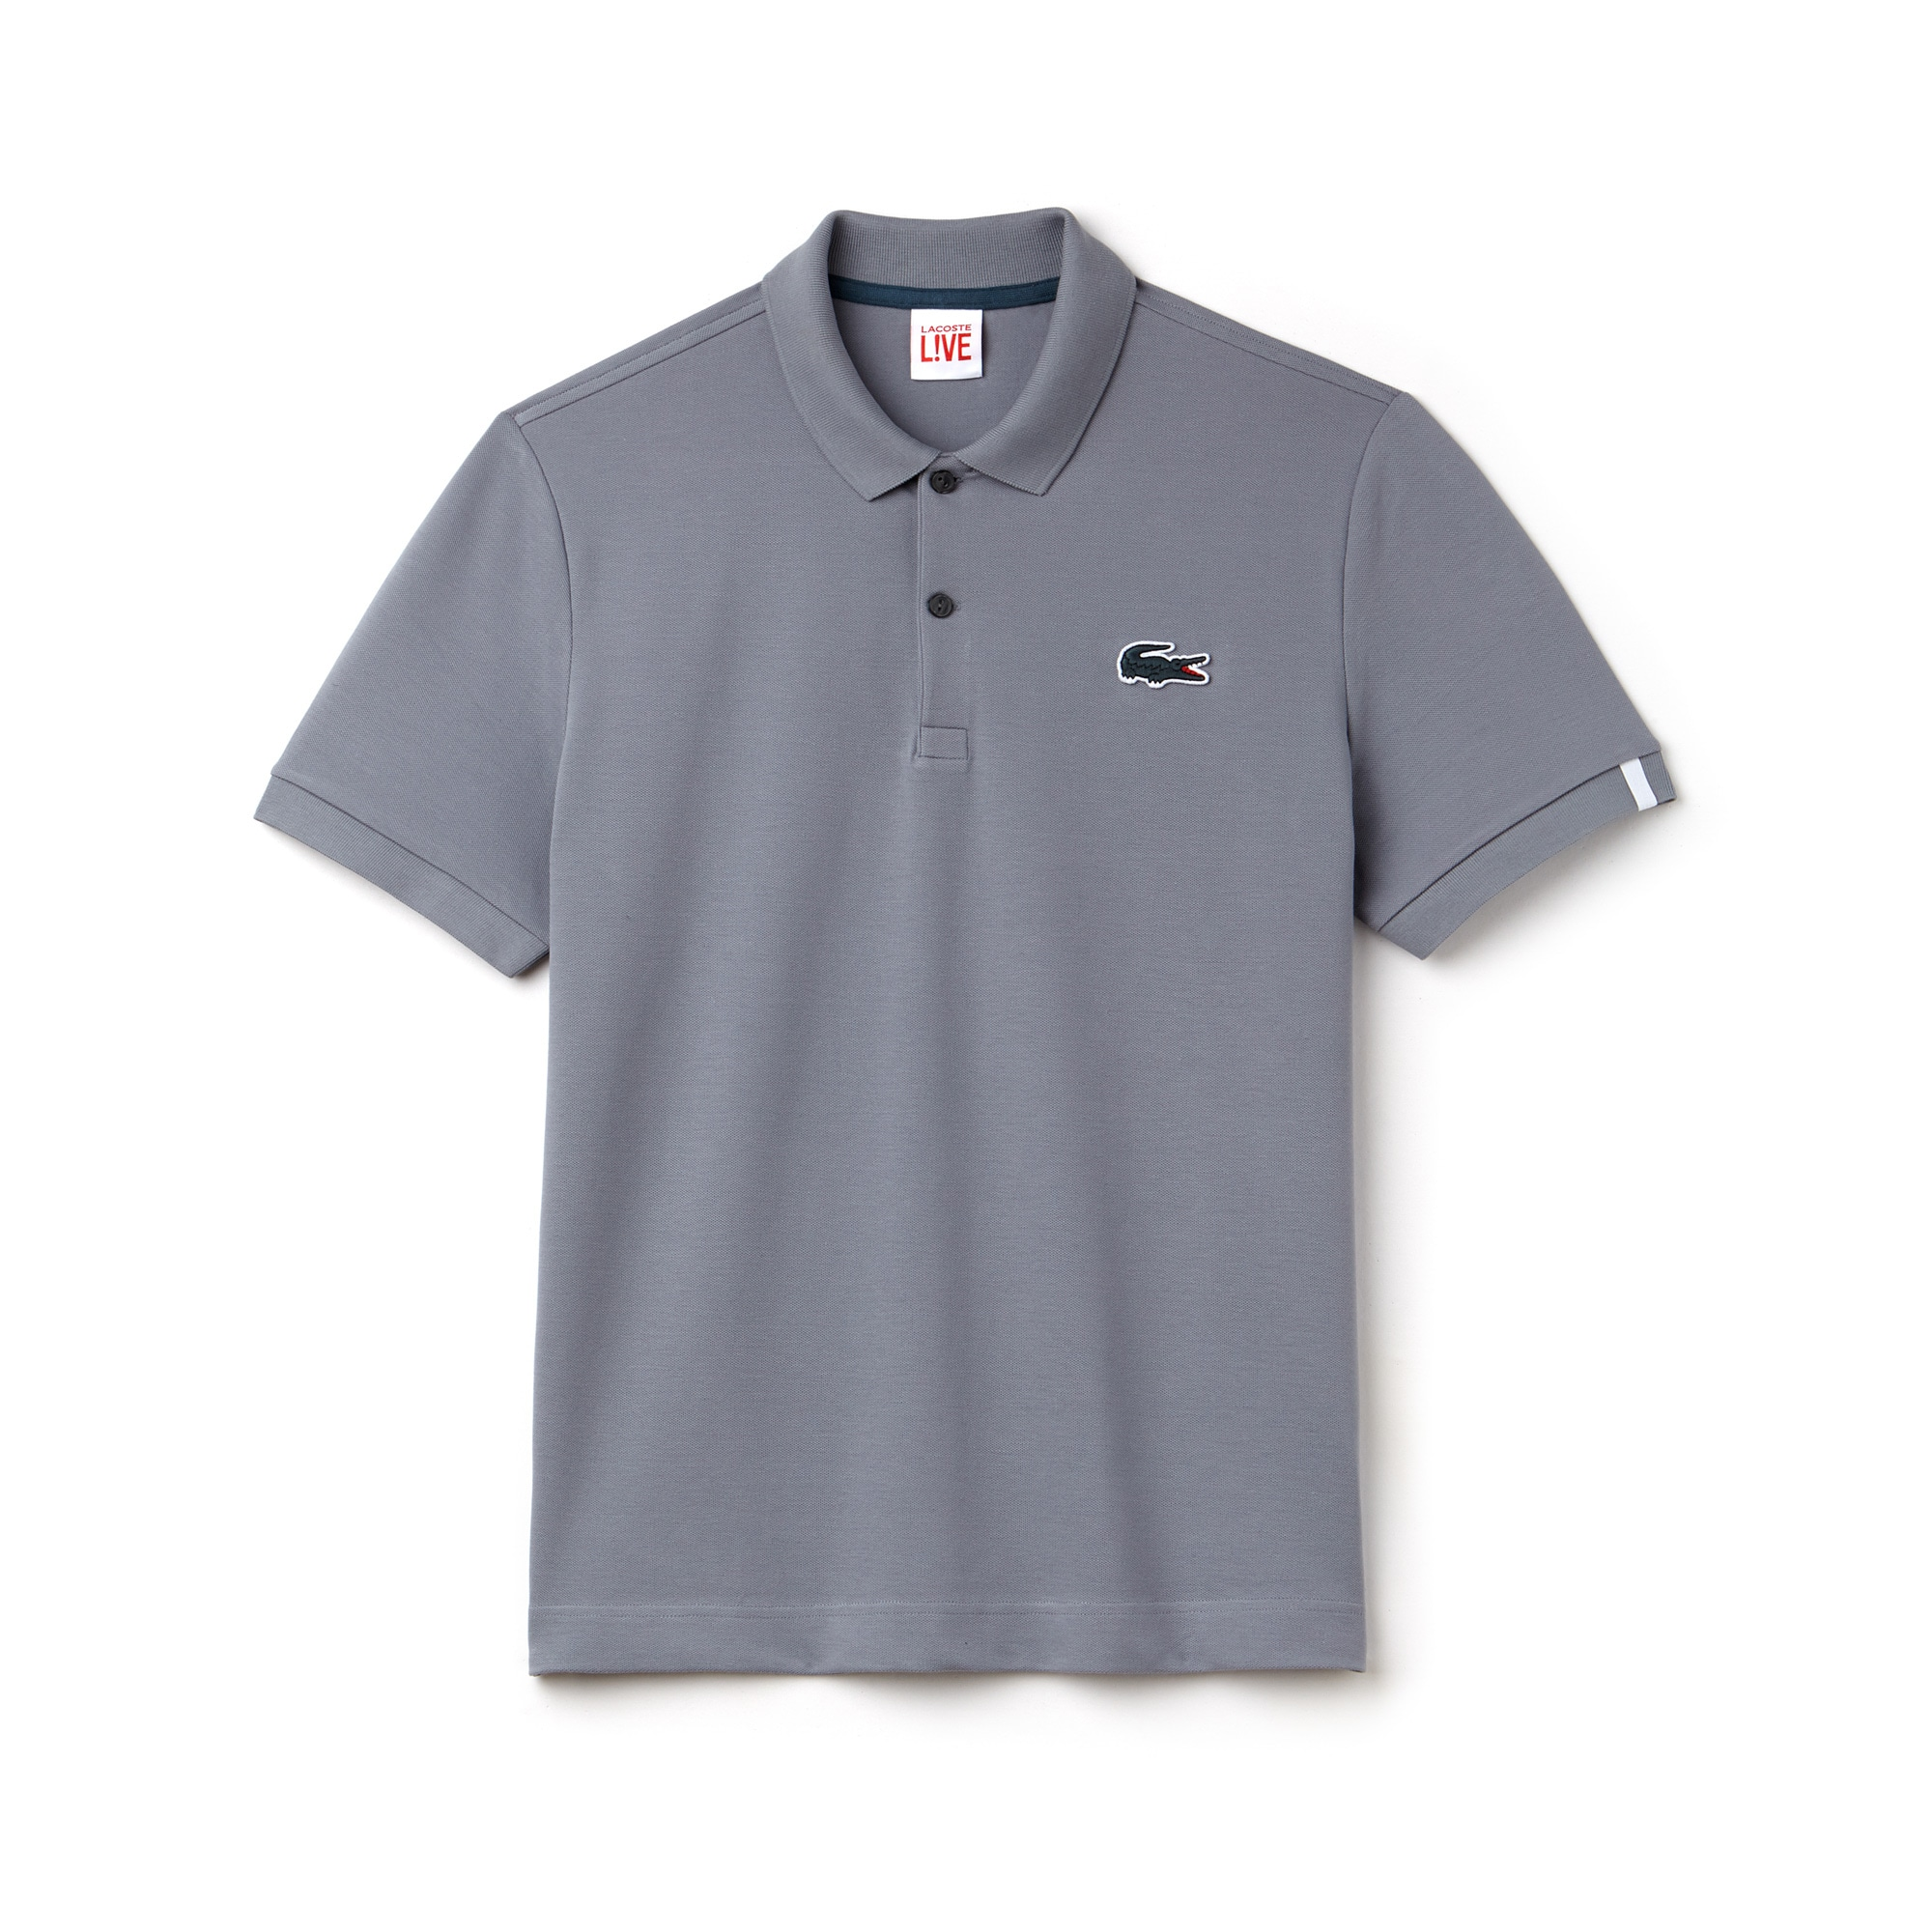 Polo slim fit Lacoste LIVE en mini piqué stretch uni